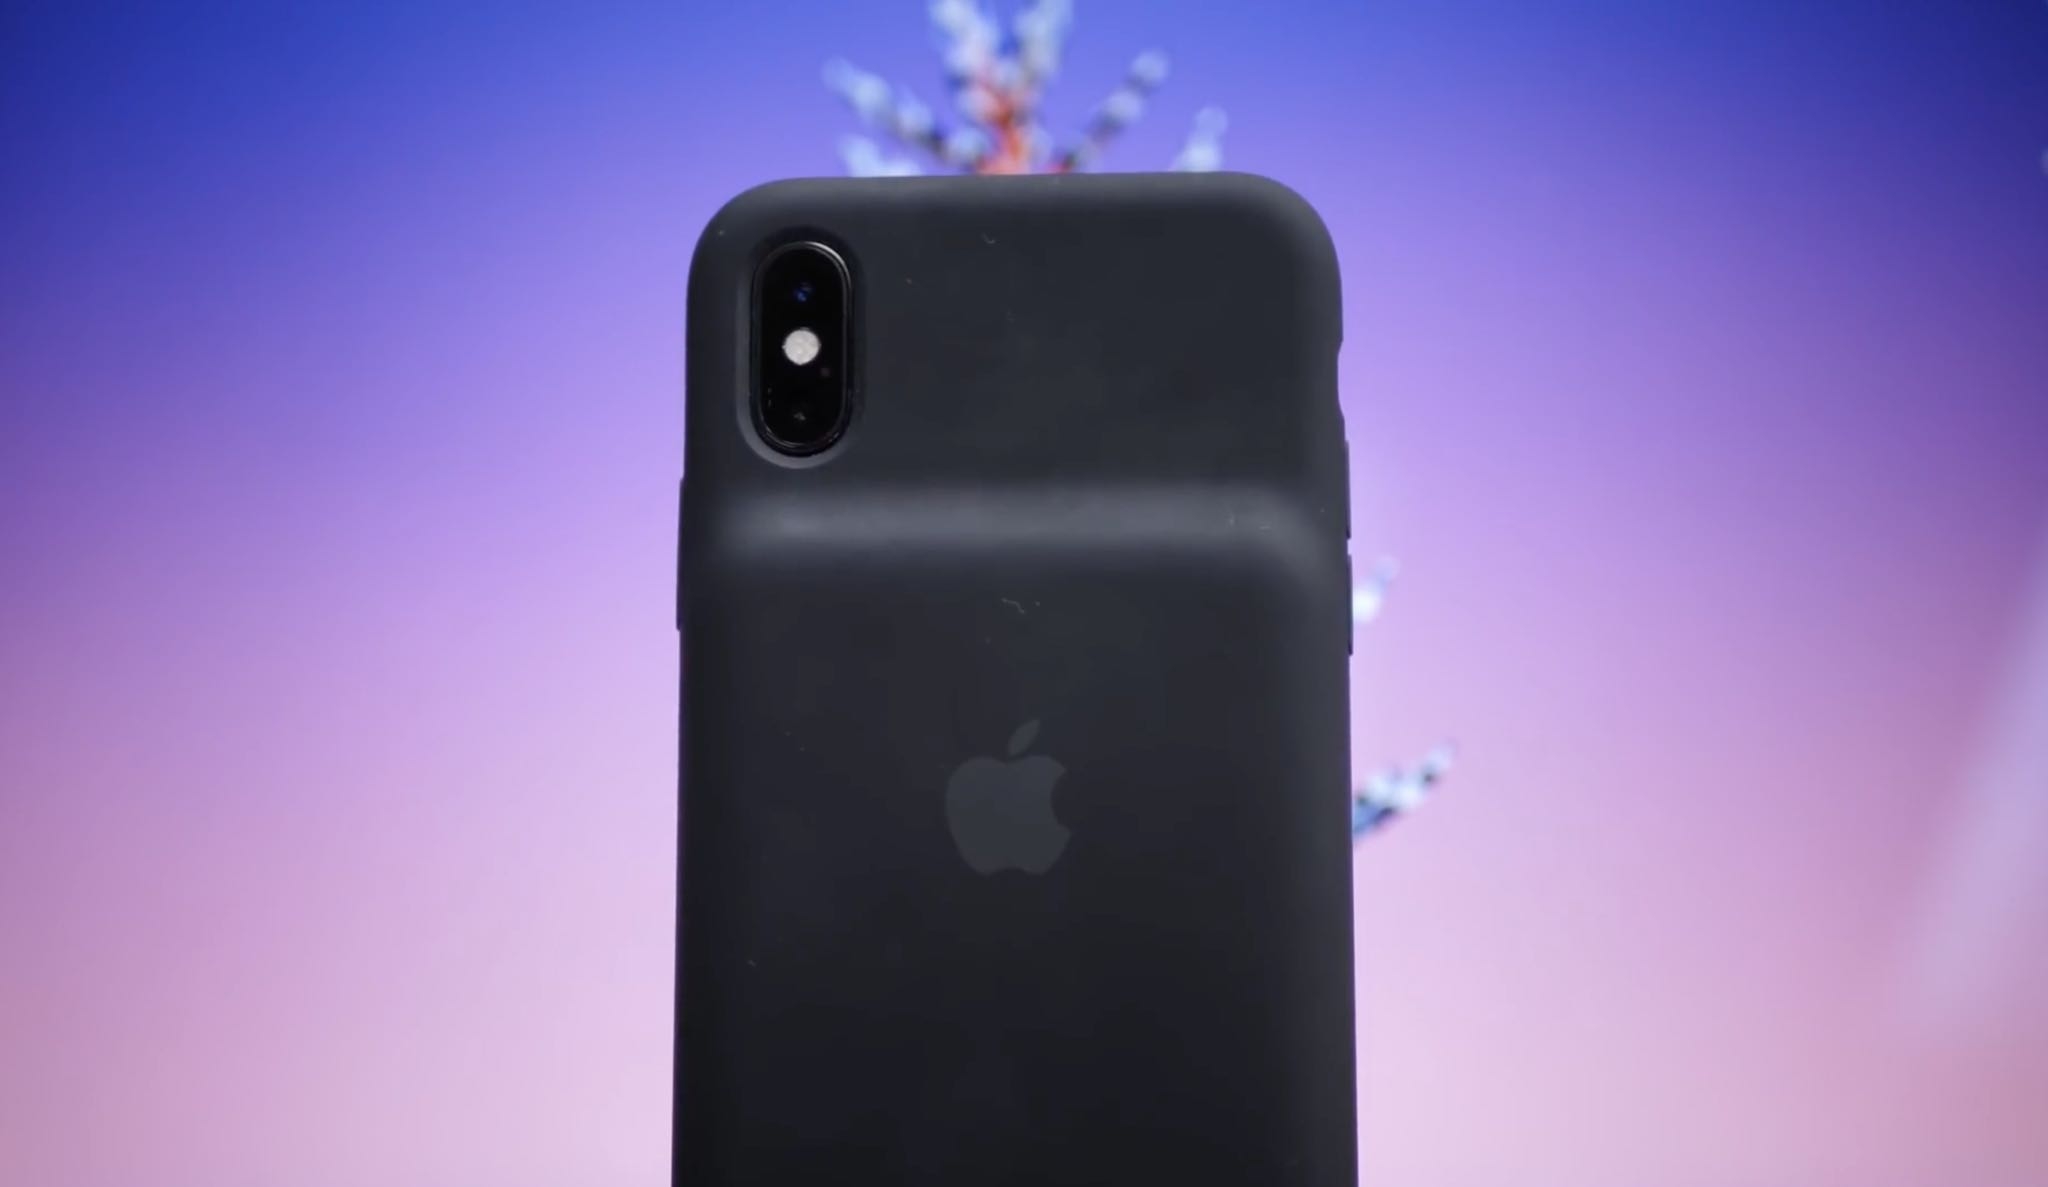 IOS 13 code hints at Smart Battery cases for iPhone 11 and iPhone 11 Pro